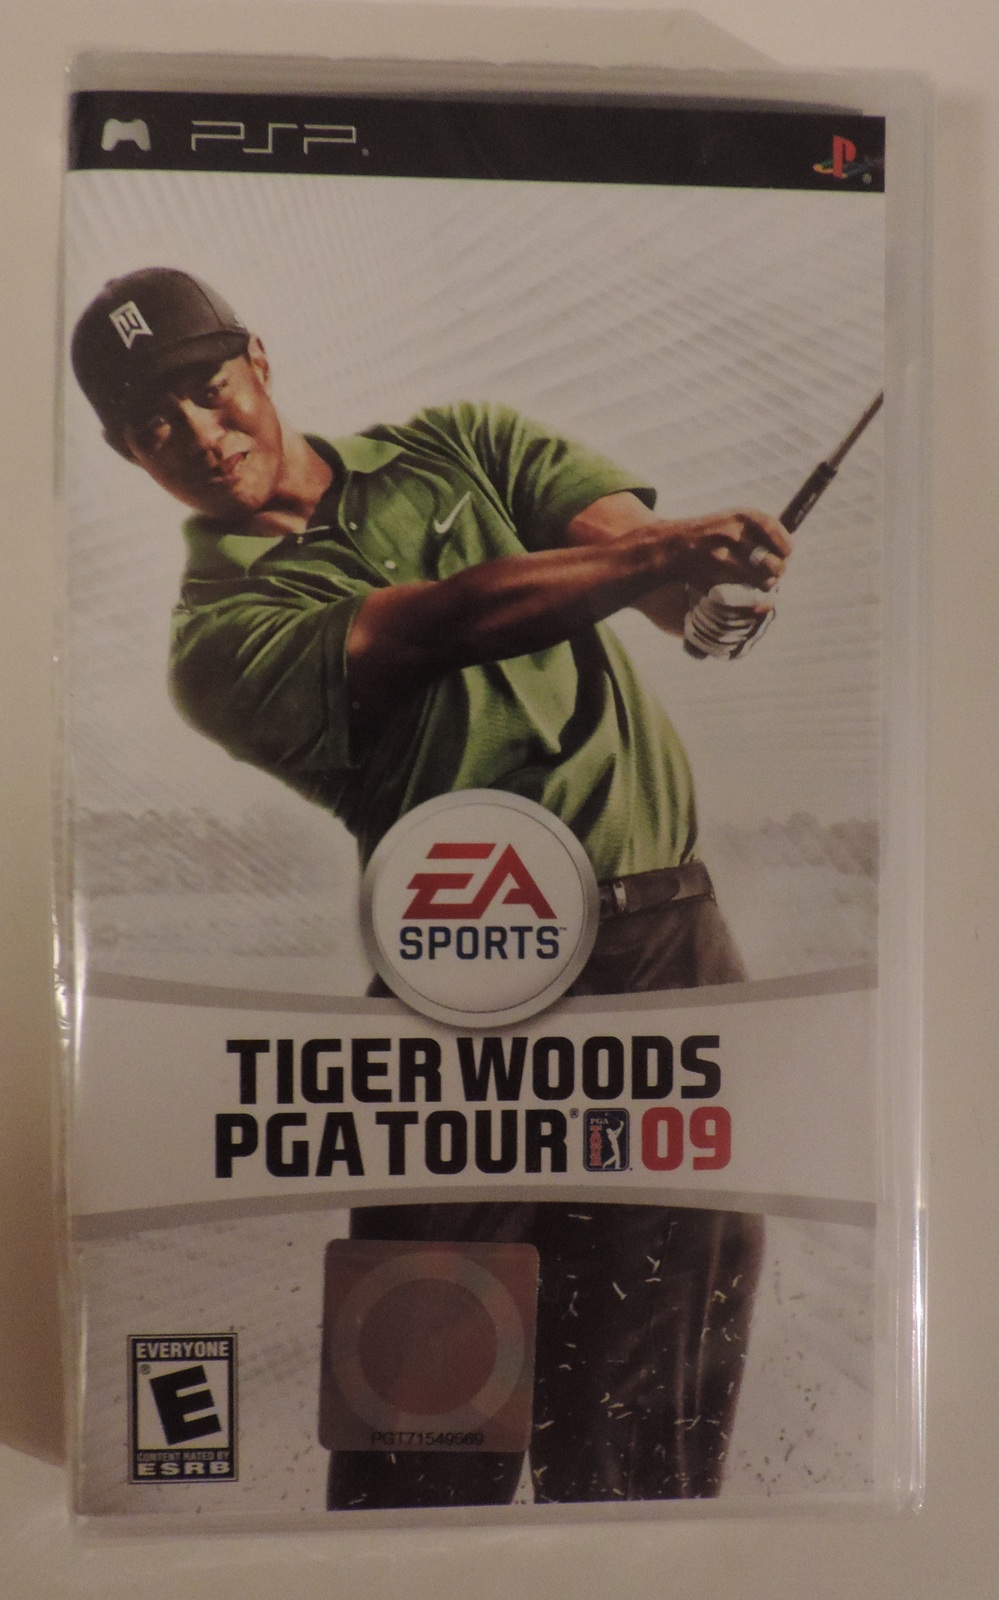 PSP PlayStation Portable Tiger Woods PGA Tour 09 golf video game - New Generic